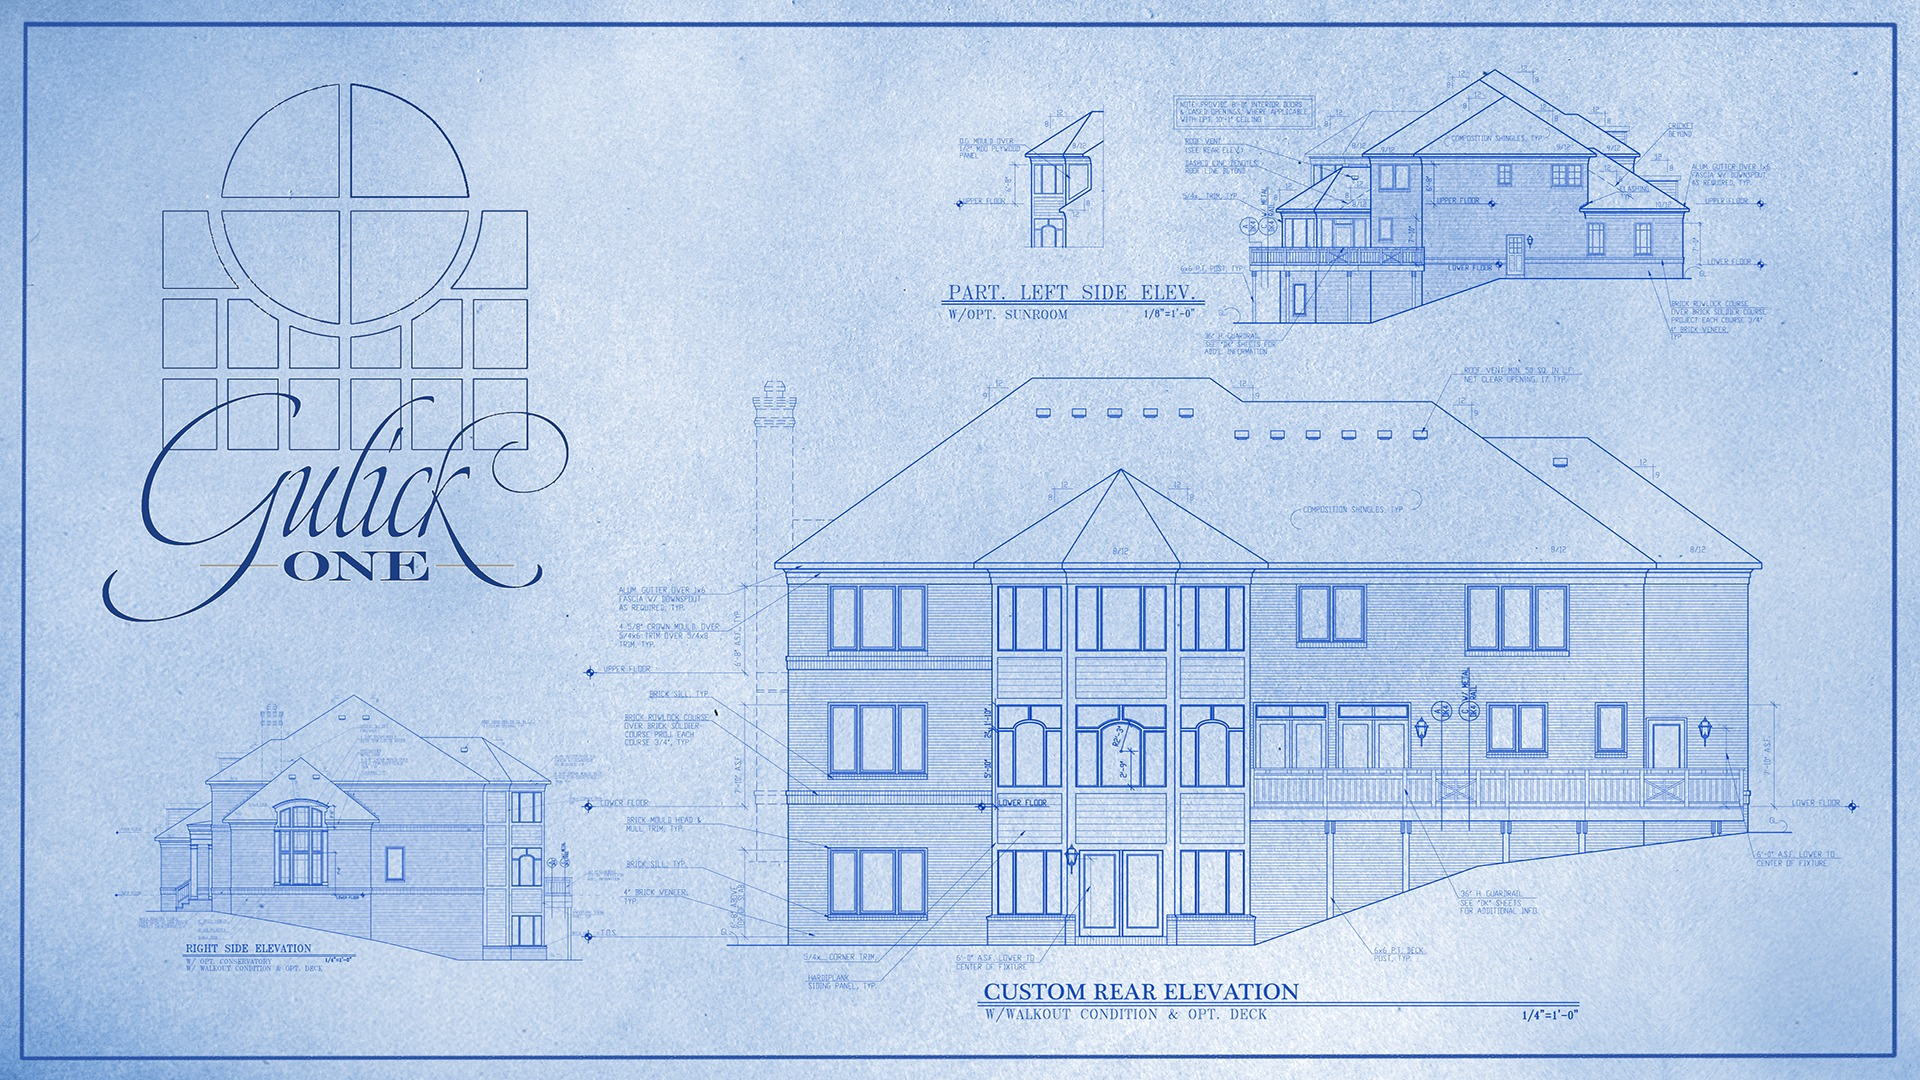 A marketing blueprint of a Gulick | One custom rear elevation.